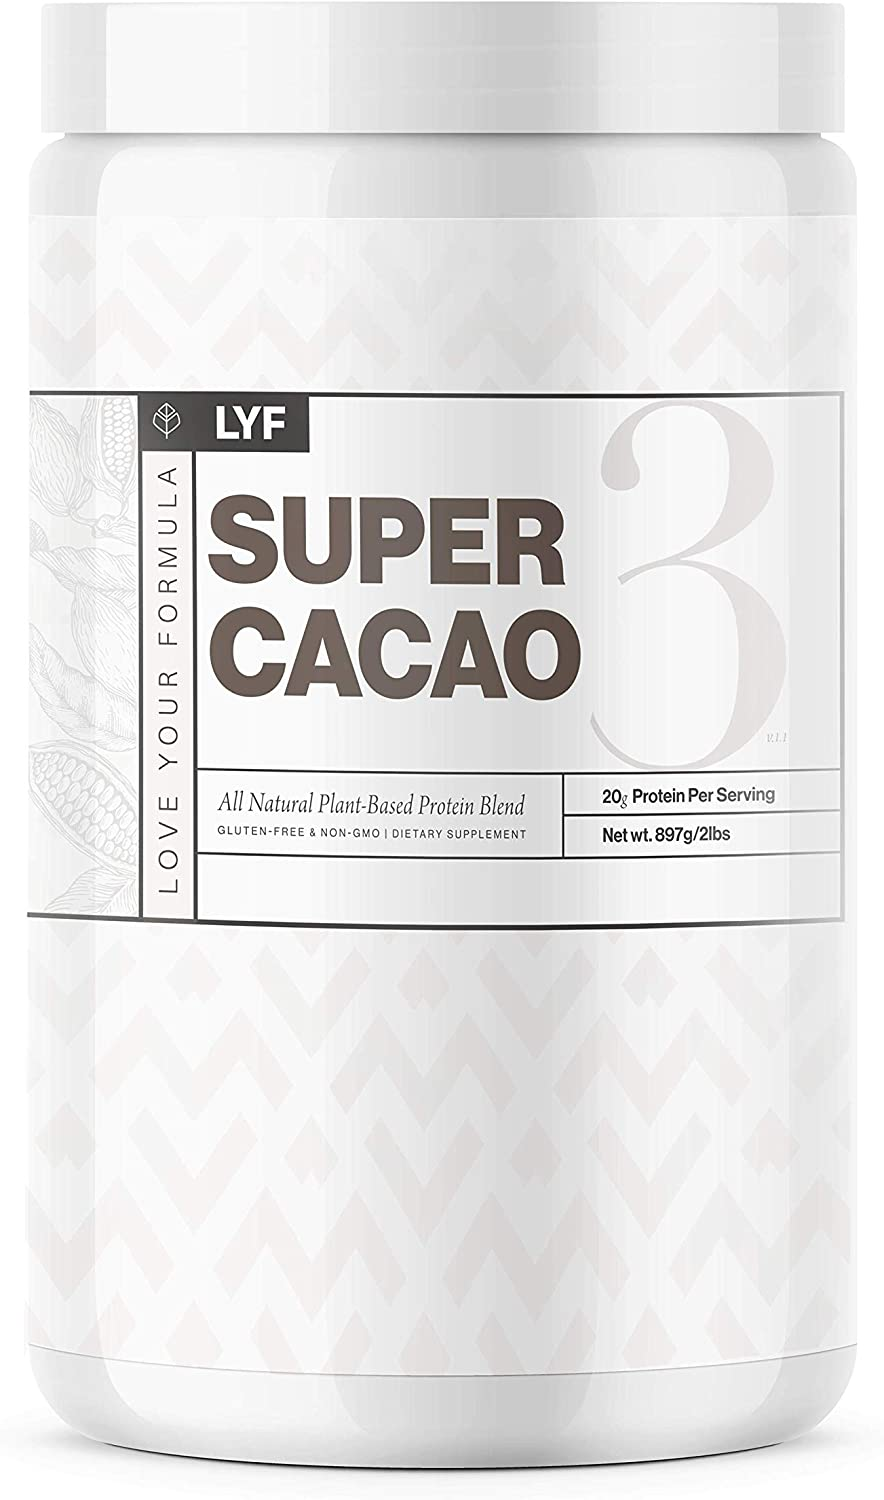 LYF Protein Powder Super 1 year warranty Cacao Plant Gifts Packe Vegan – Based